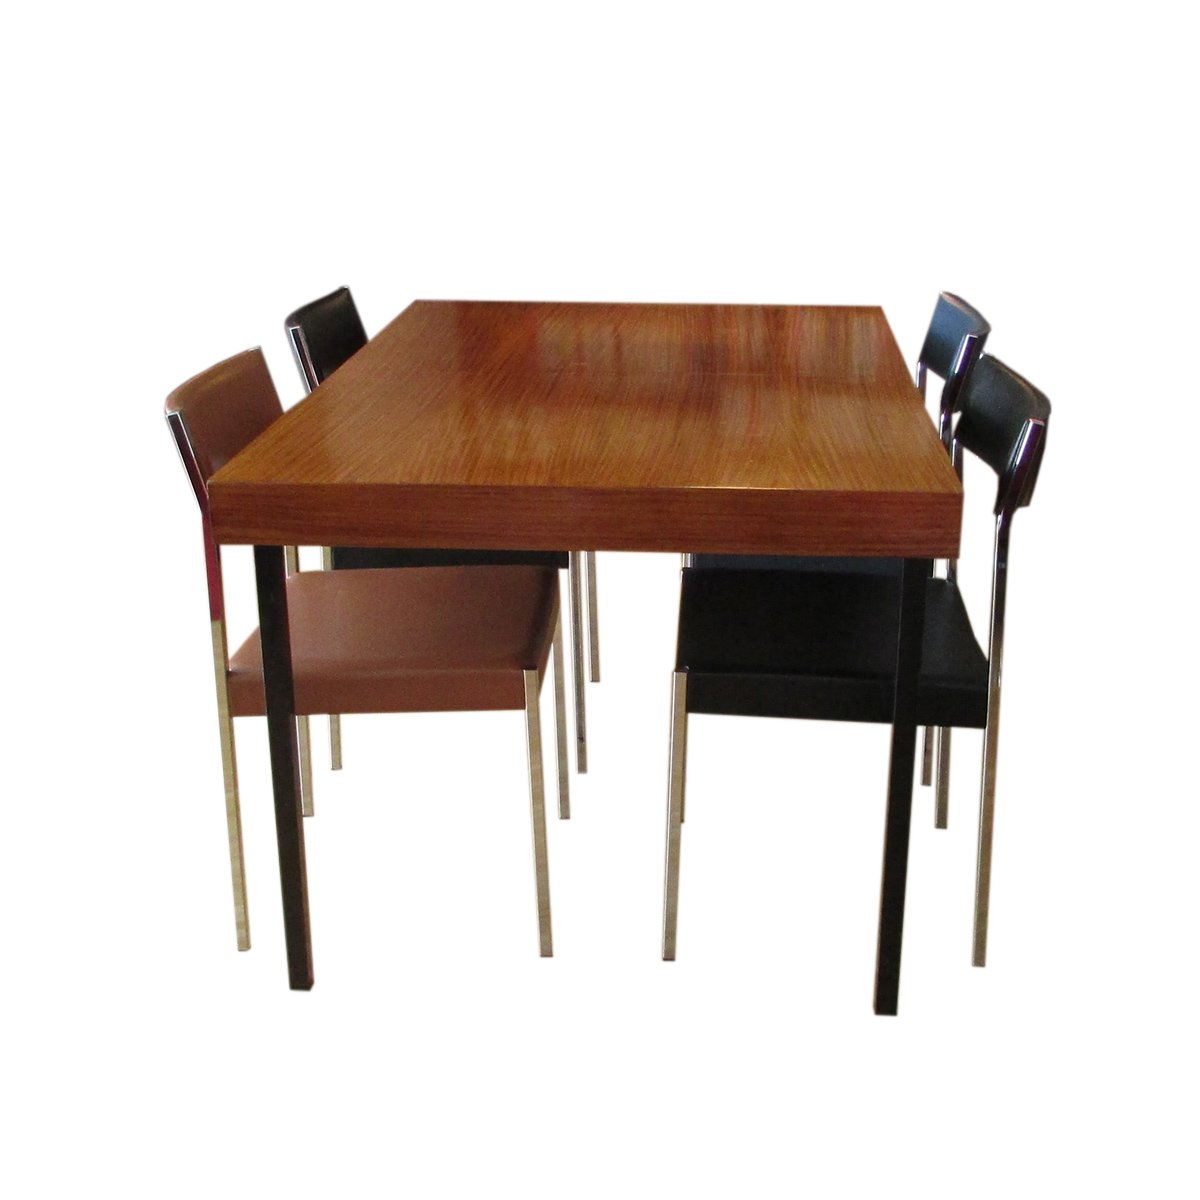 table de salle manger en teck rallonge par dieter w ckerlin pour idealheim en vente sur pamono. Black Bedroom Furniture Sets. Home Design Ideas